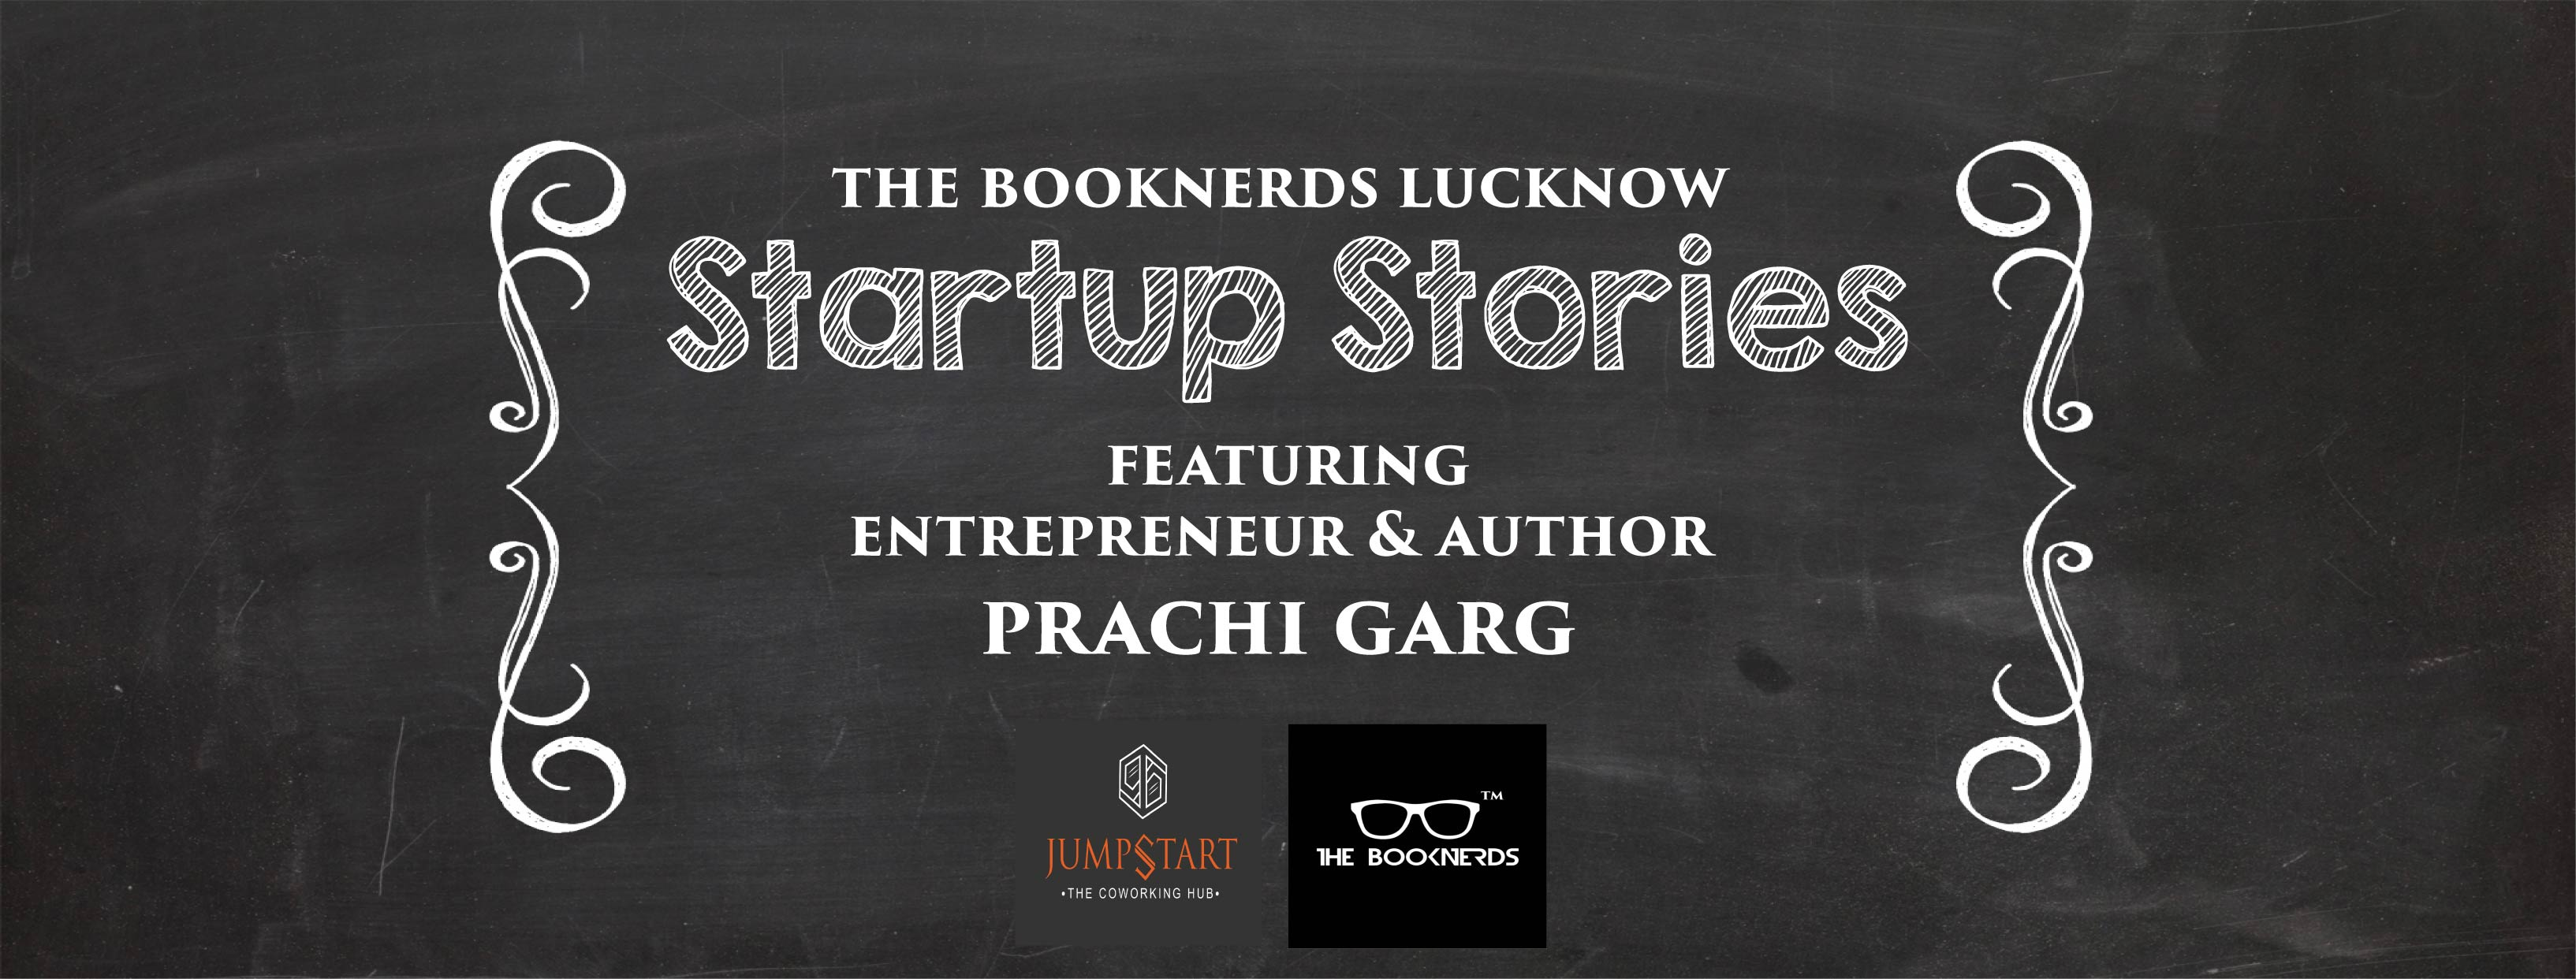 Startup Stories feat. Author & Entrepreneur Prachi Garg:Dehradun